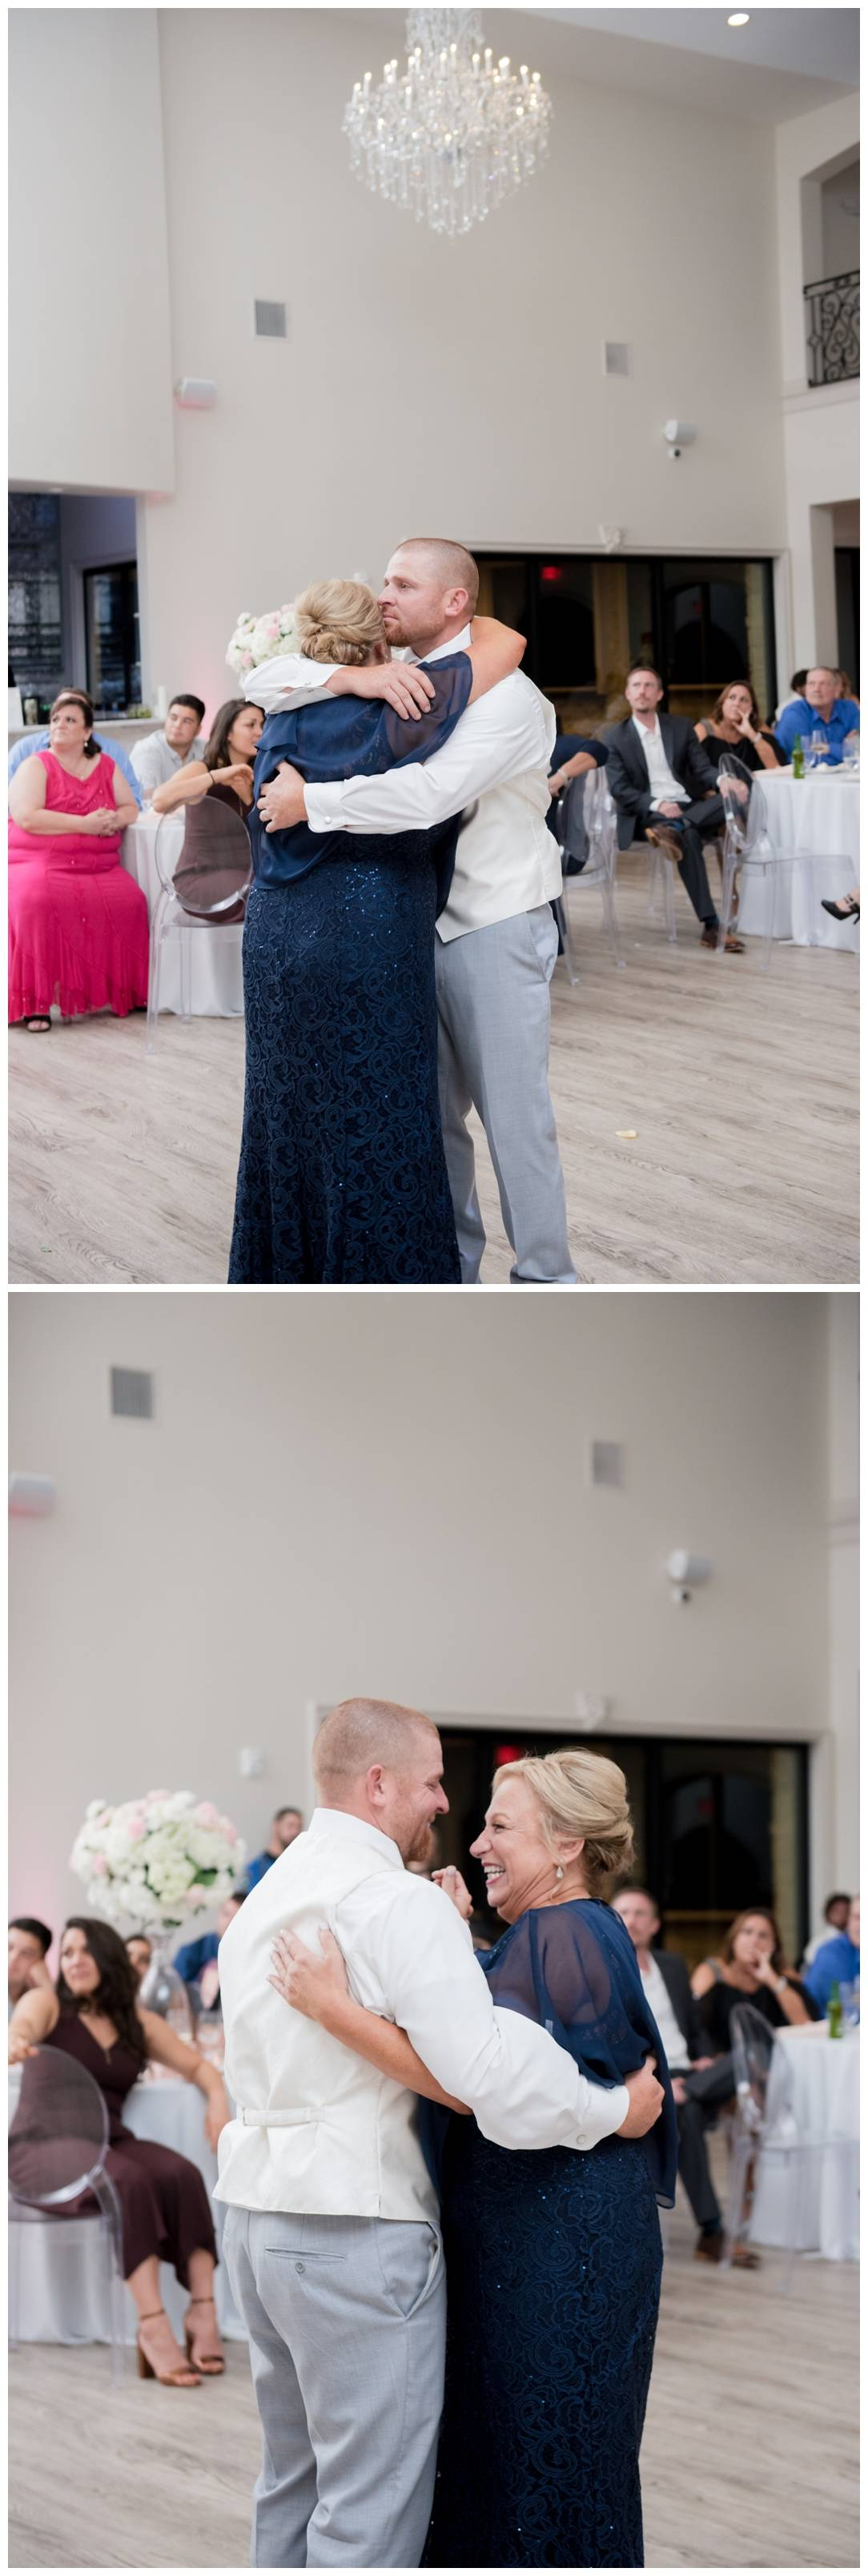 Mother Son Dance The Knotting Hill Place.jpg